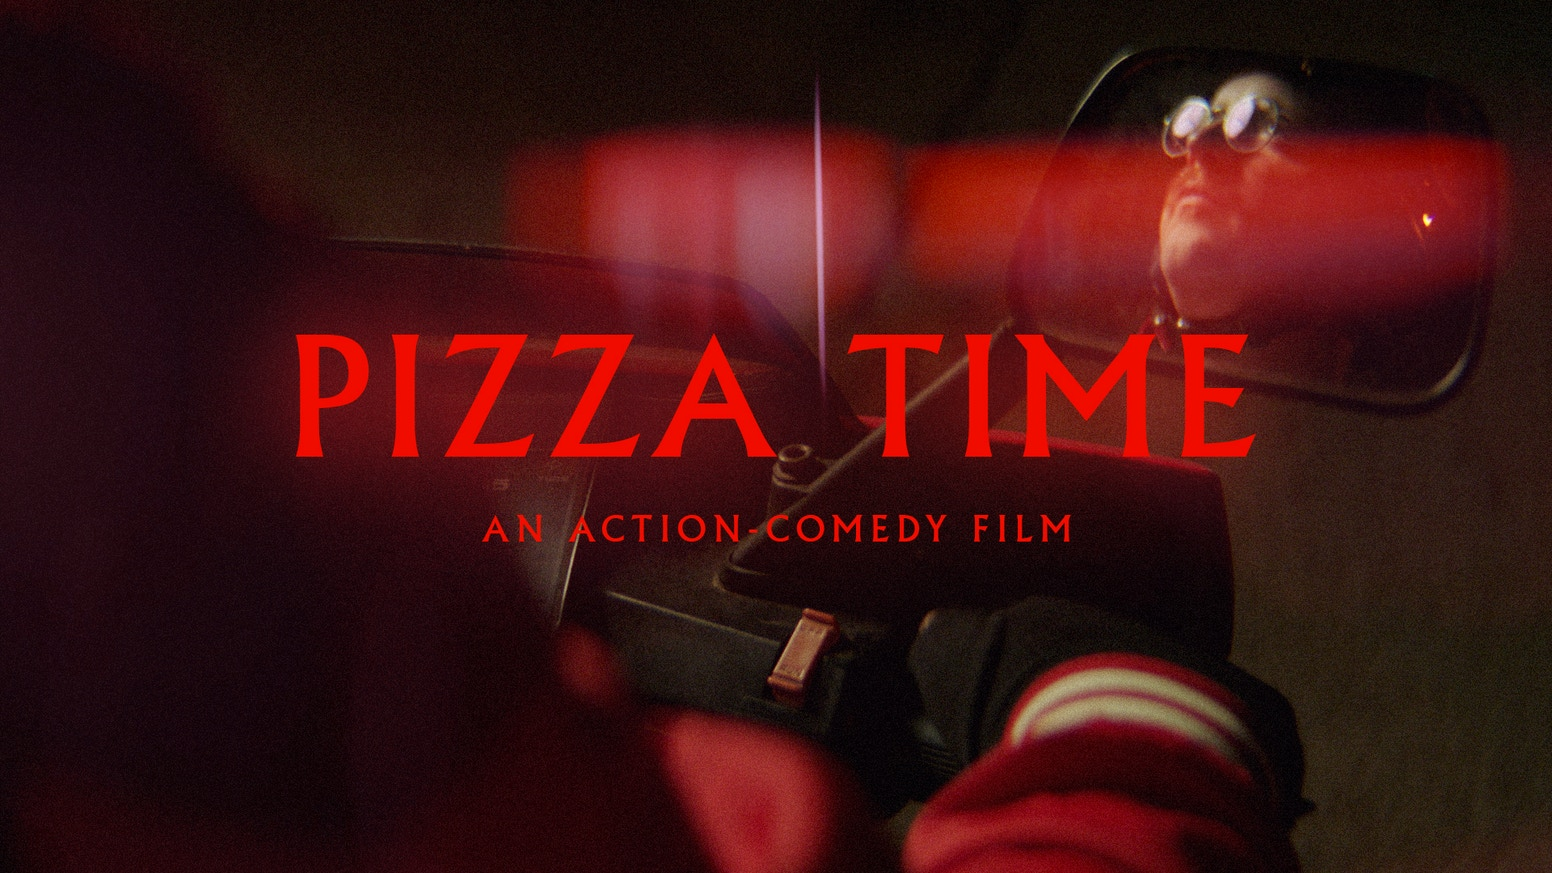 A pizza delivery driver goes to the right place at the wrong time when he stumbles into the scene of a hitman's contract killing.